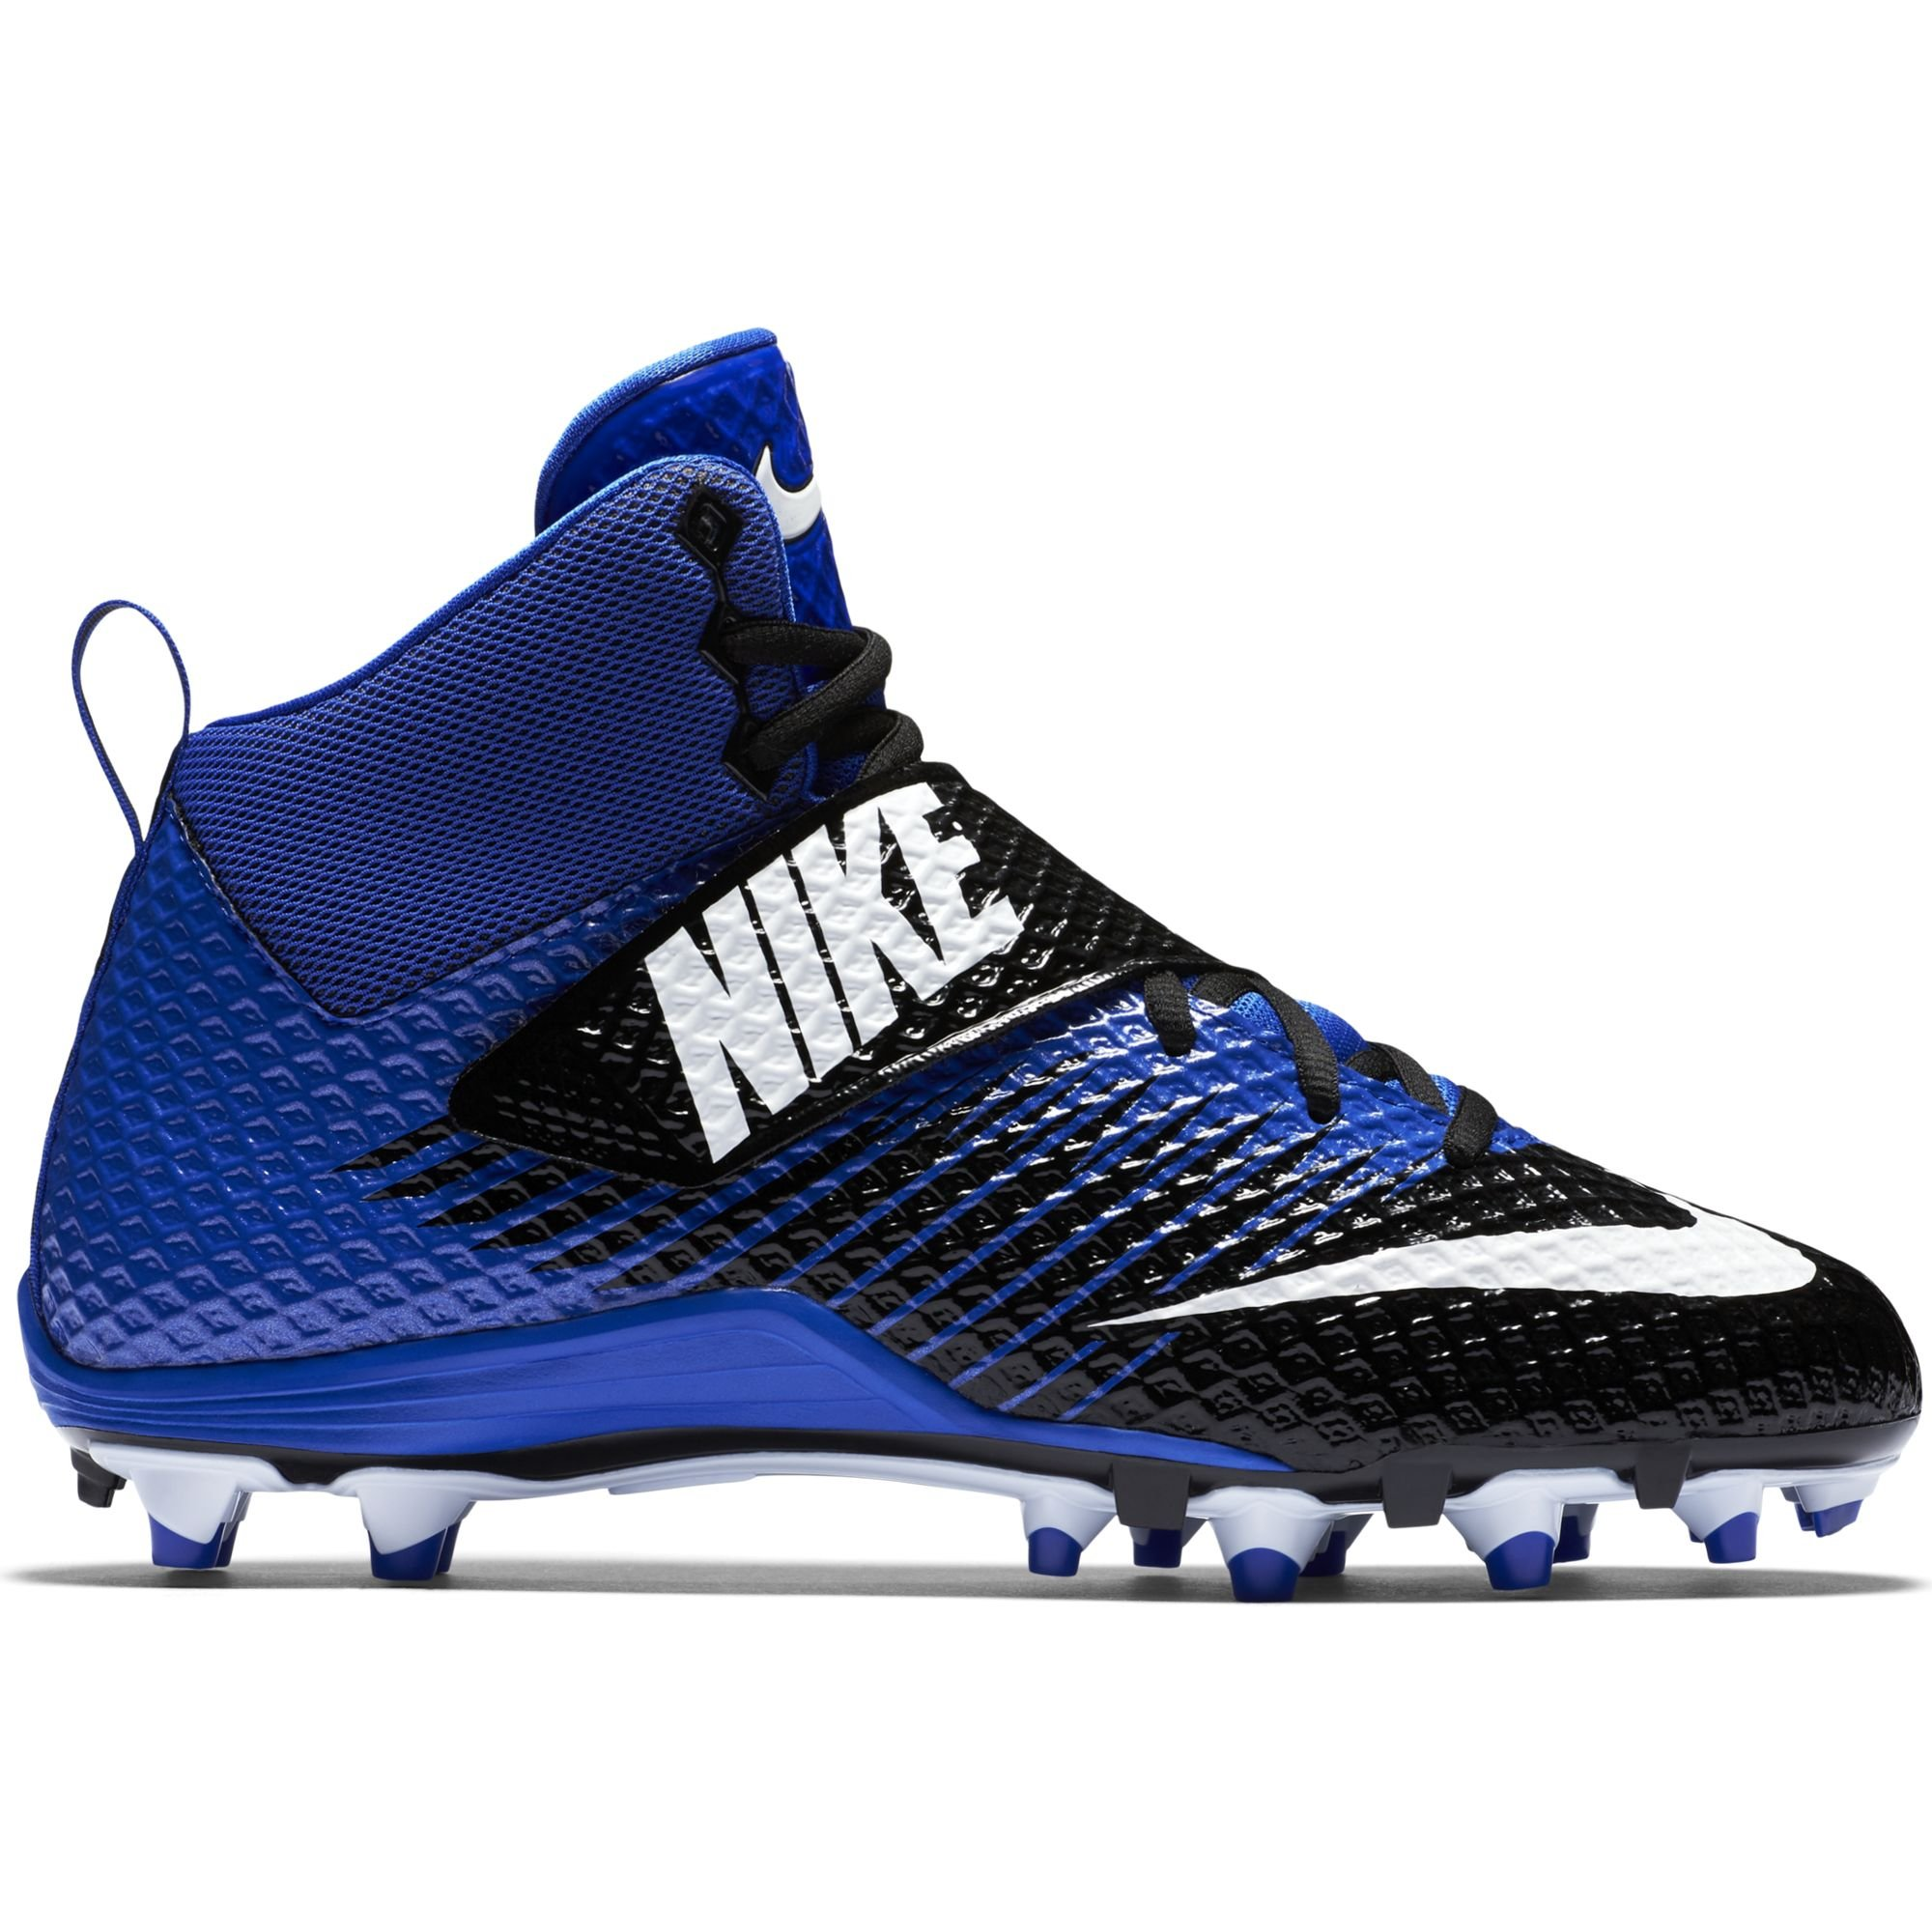 Nike Men's Lunarbeast Pro TD Football Cleat Black/Racer Blue/White Size 10 M US by Nike (Image #1)